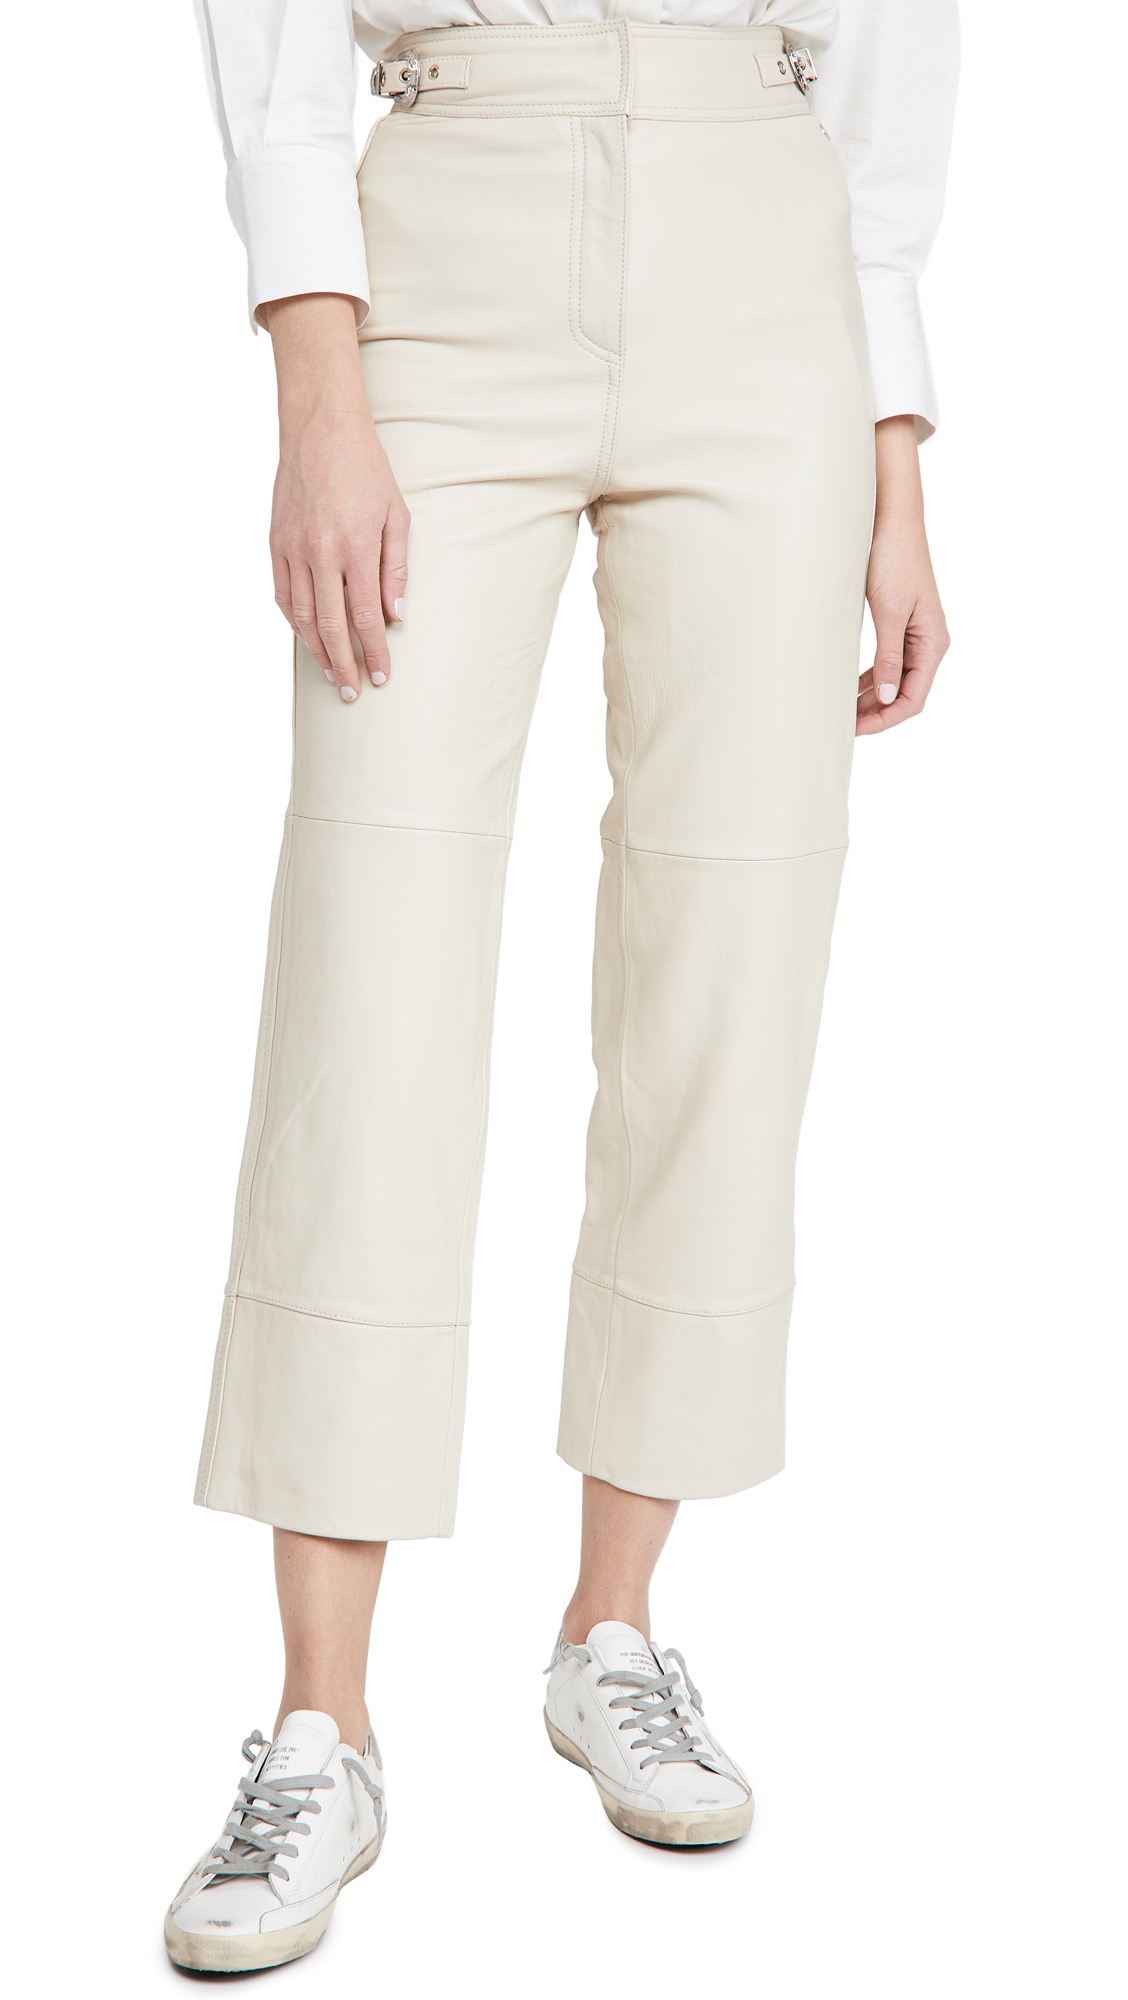 Scotch & Soda/Maison Scotch Straight Leg Leather Pants